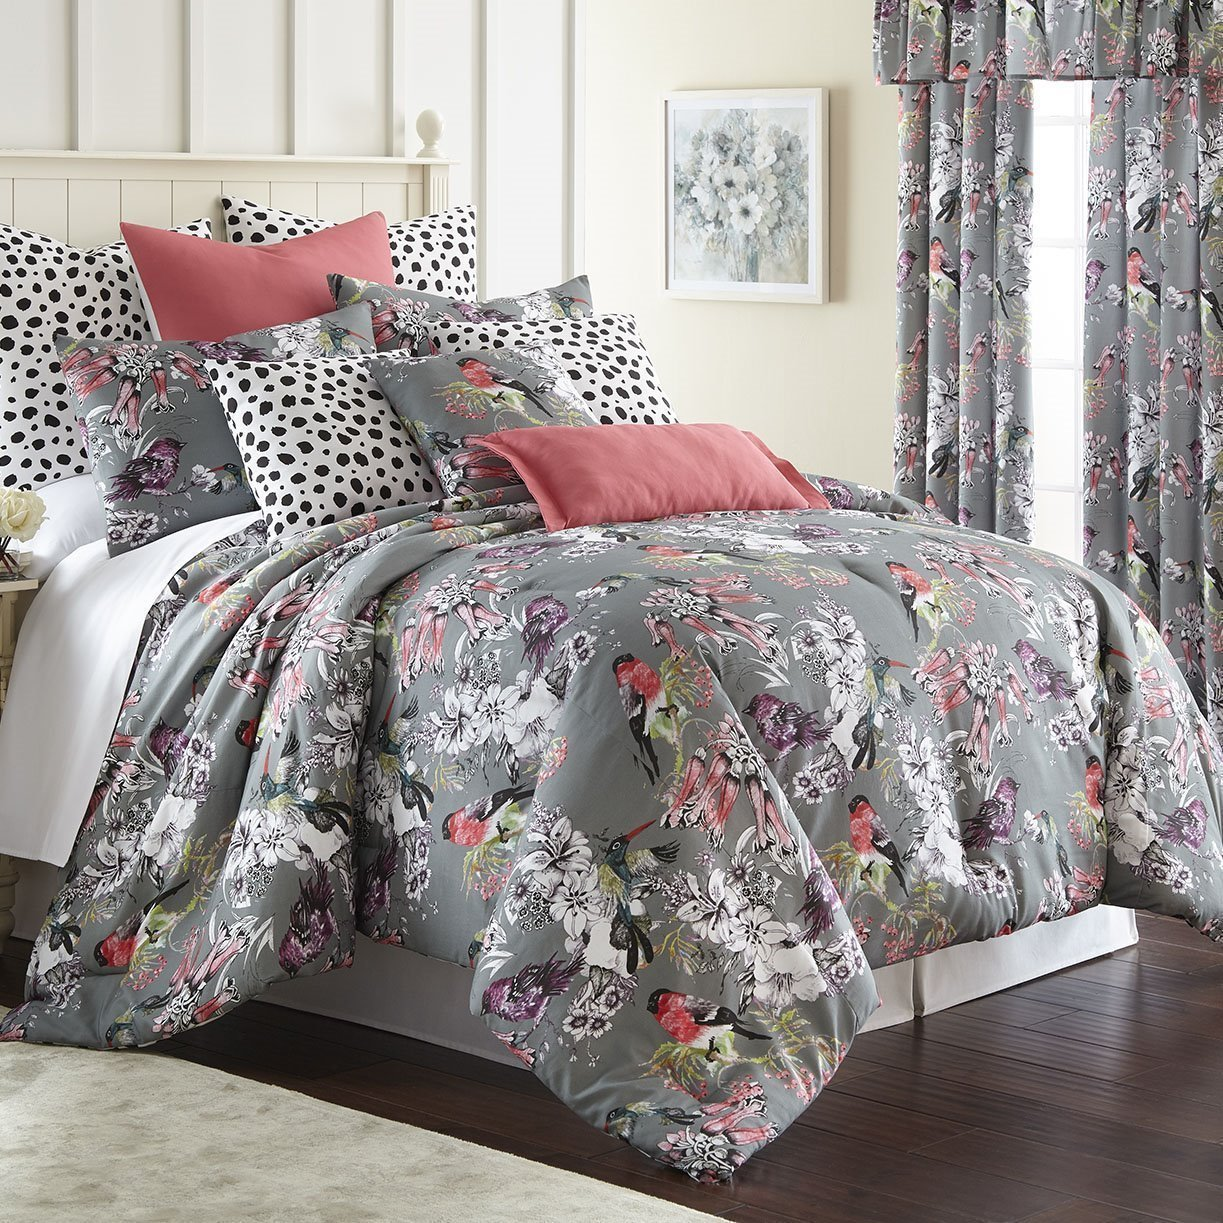 Birds In Bliss Comforter Set Queen Size